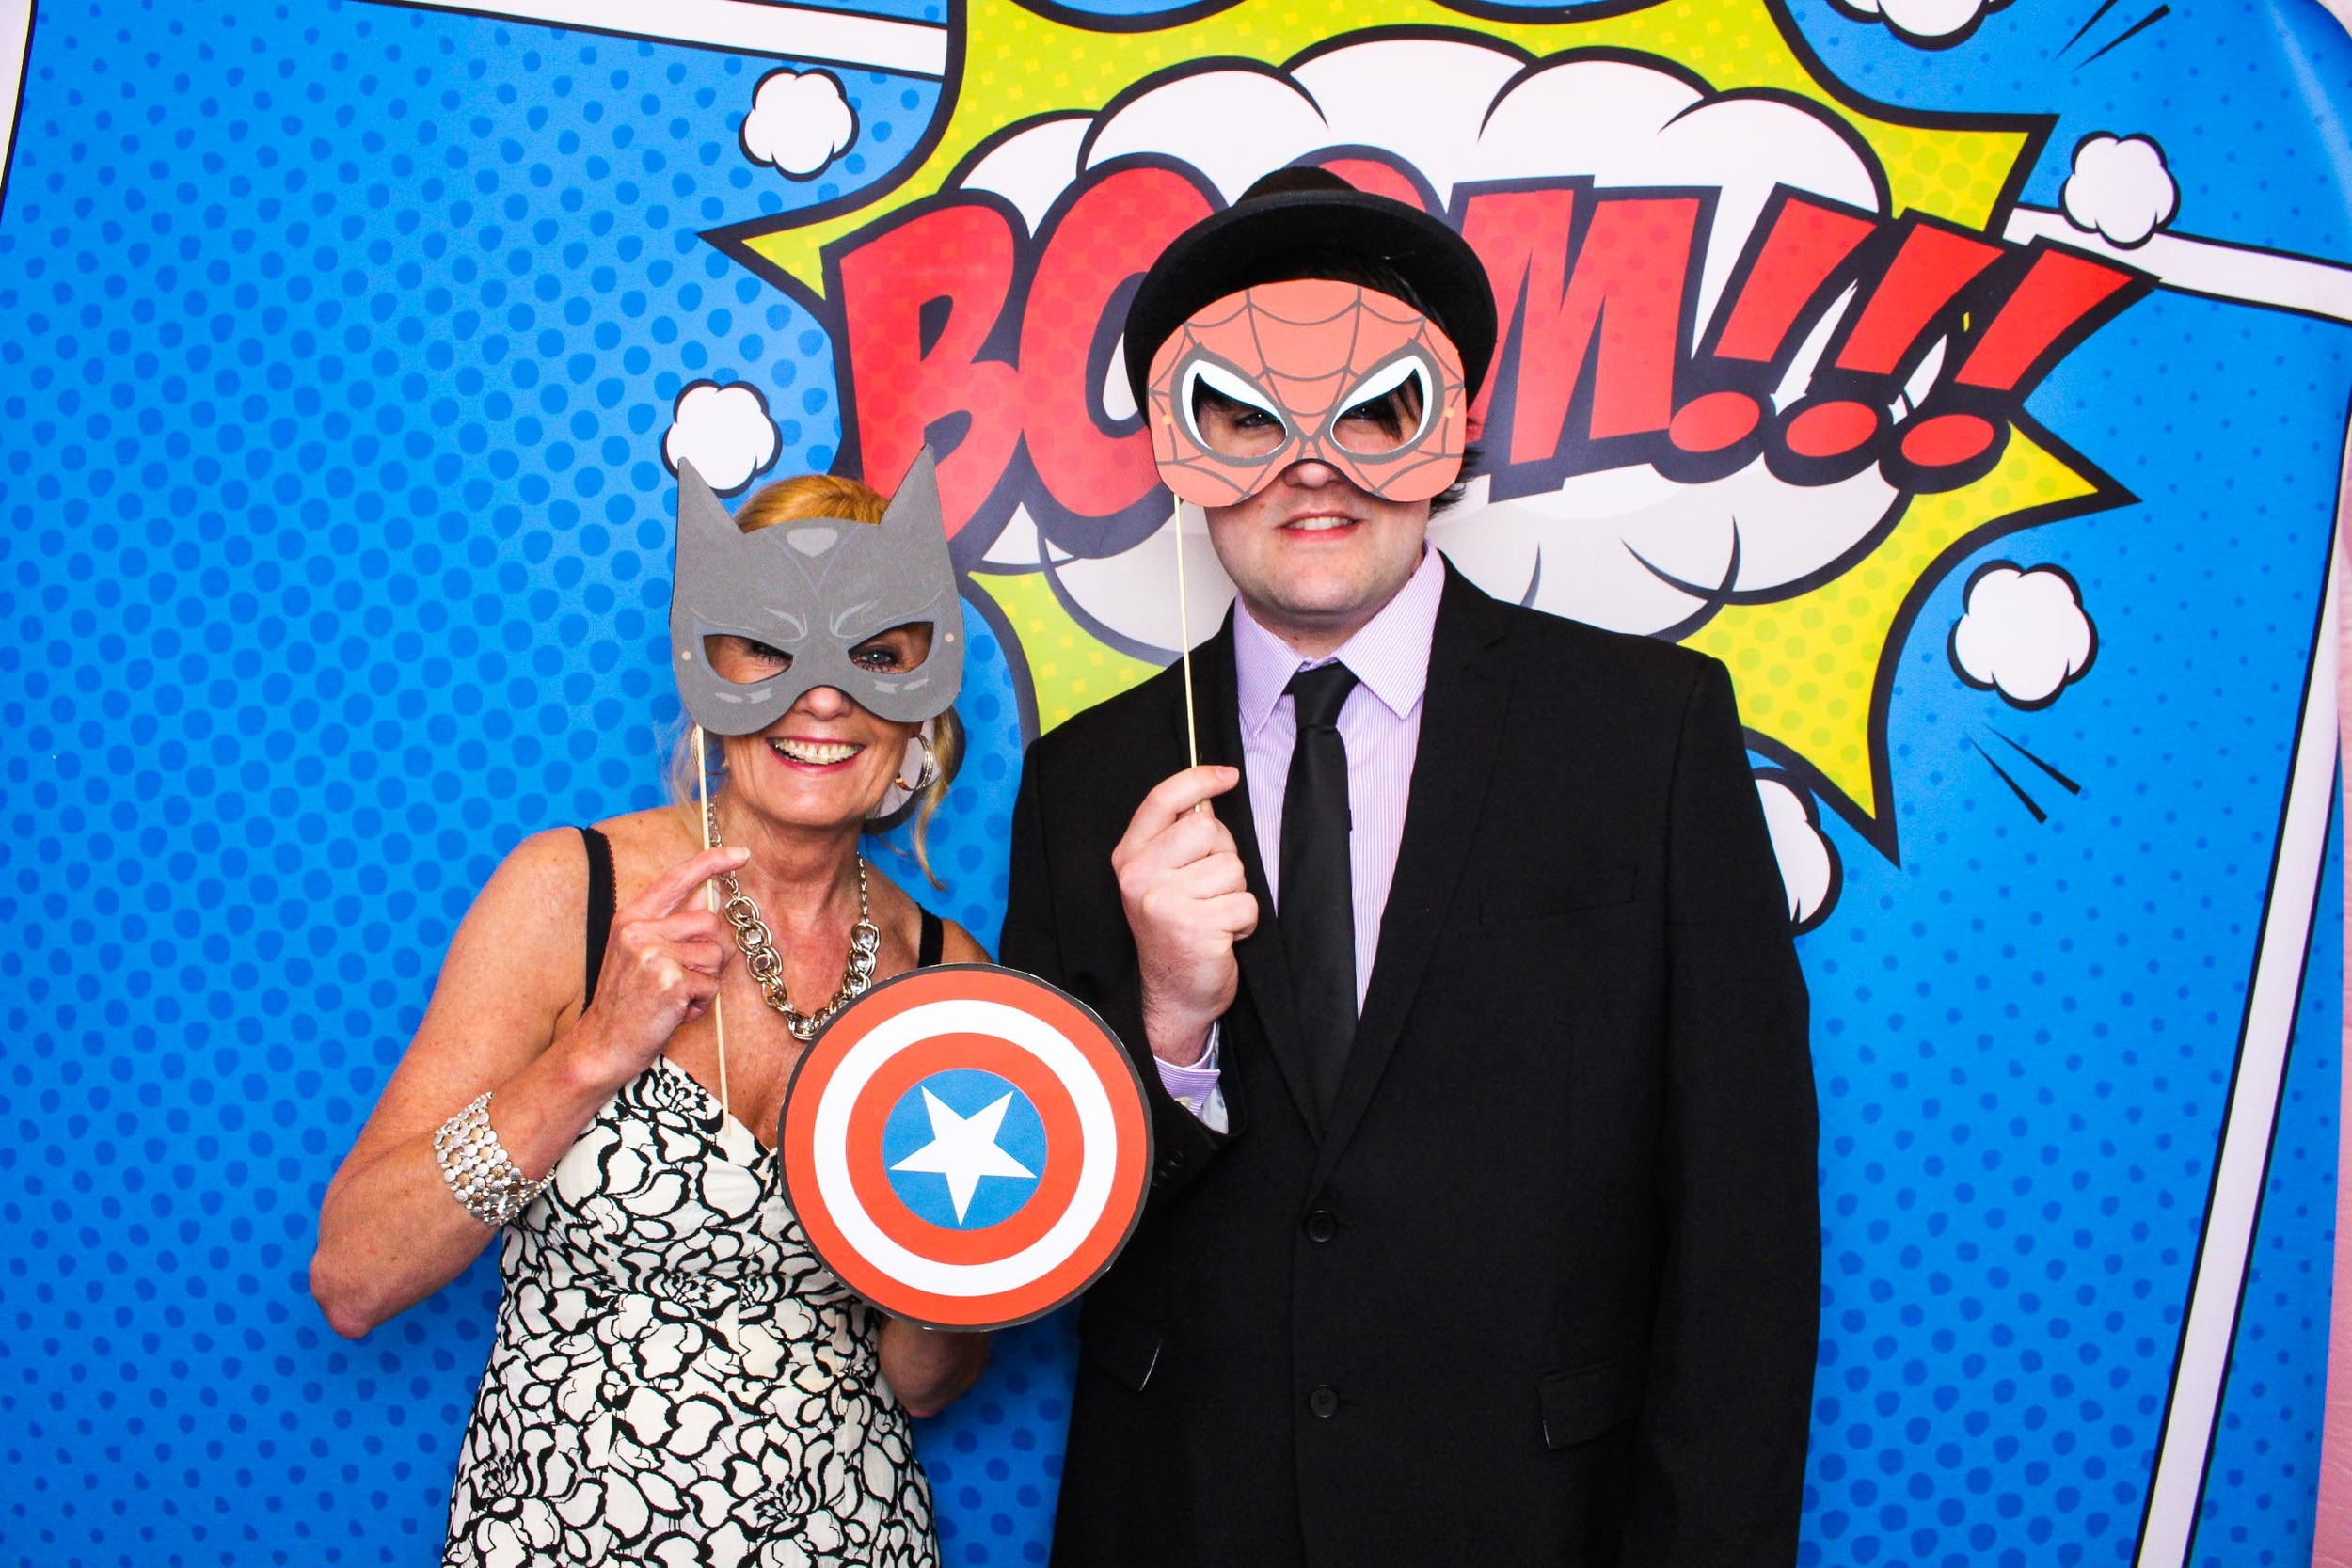 Fotoauto Photo Booth Hire - Shop Direct-15.jpg